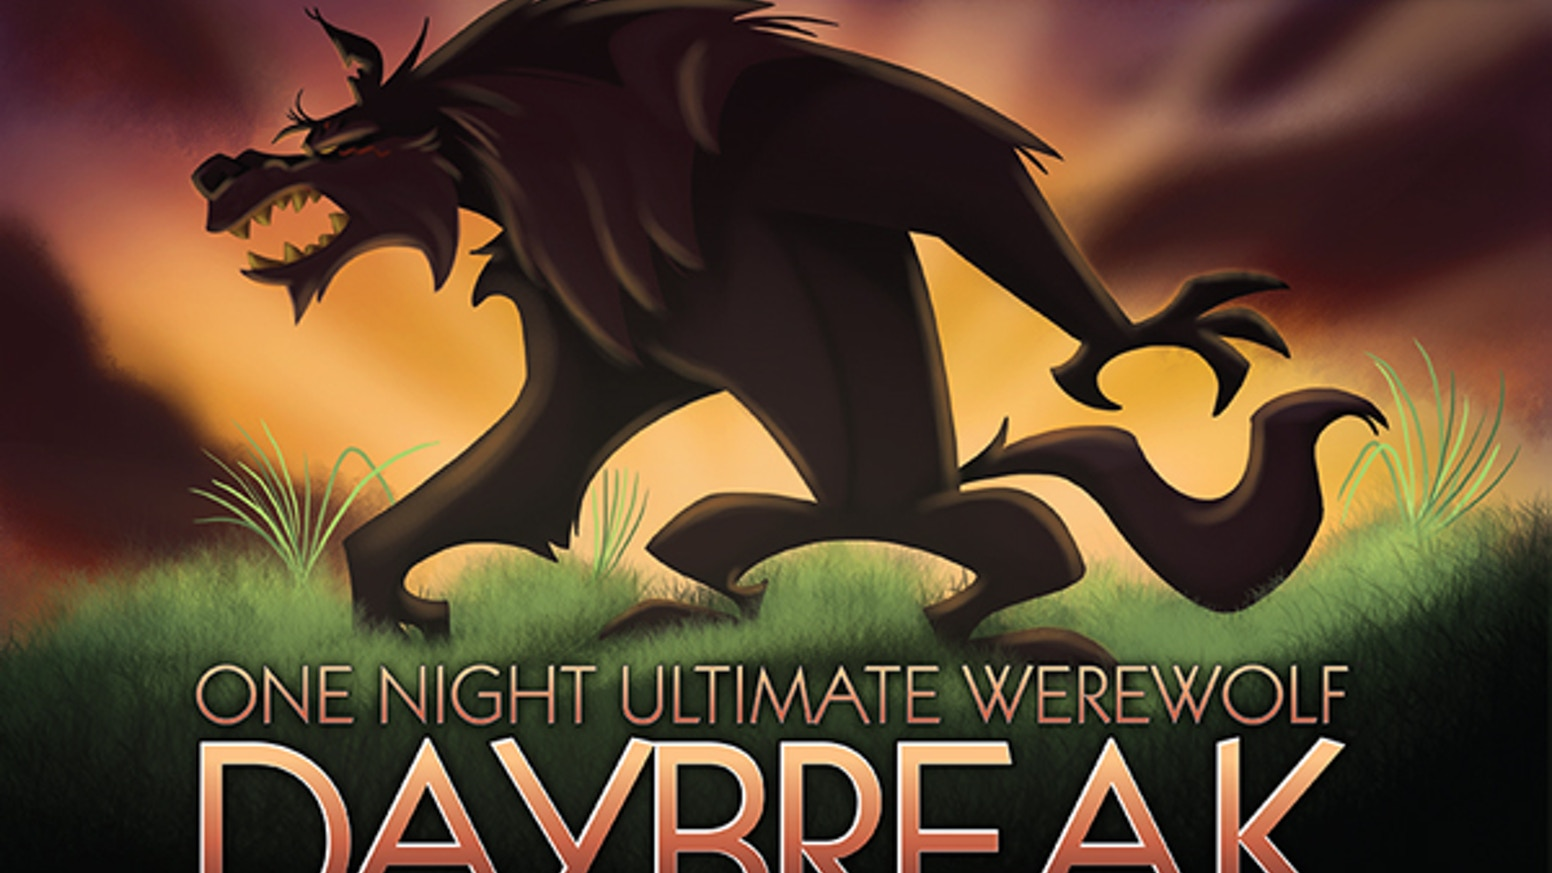 Eleven new roles that can be added to One Night Ultimate Werewolf & One Night Ultimate Vampire!